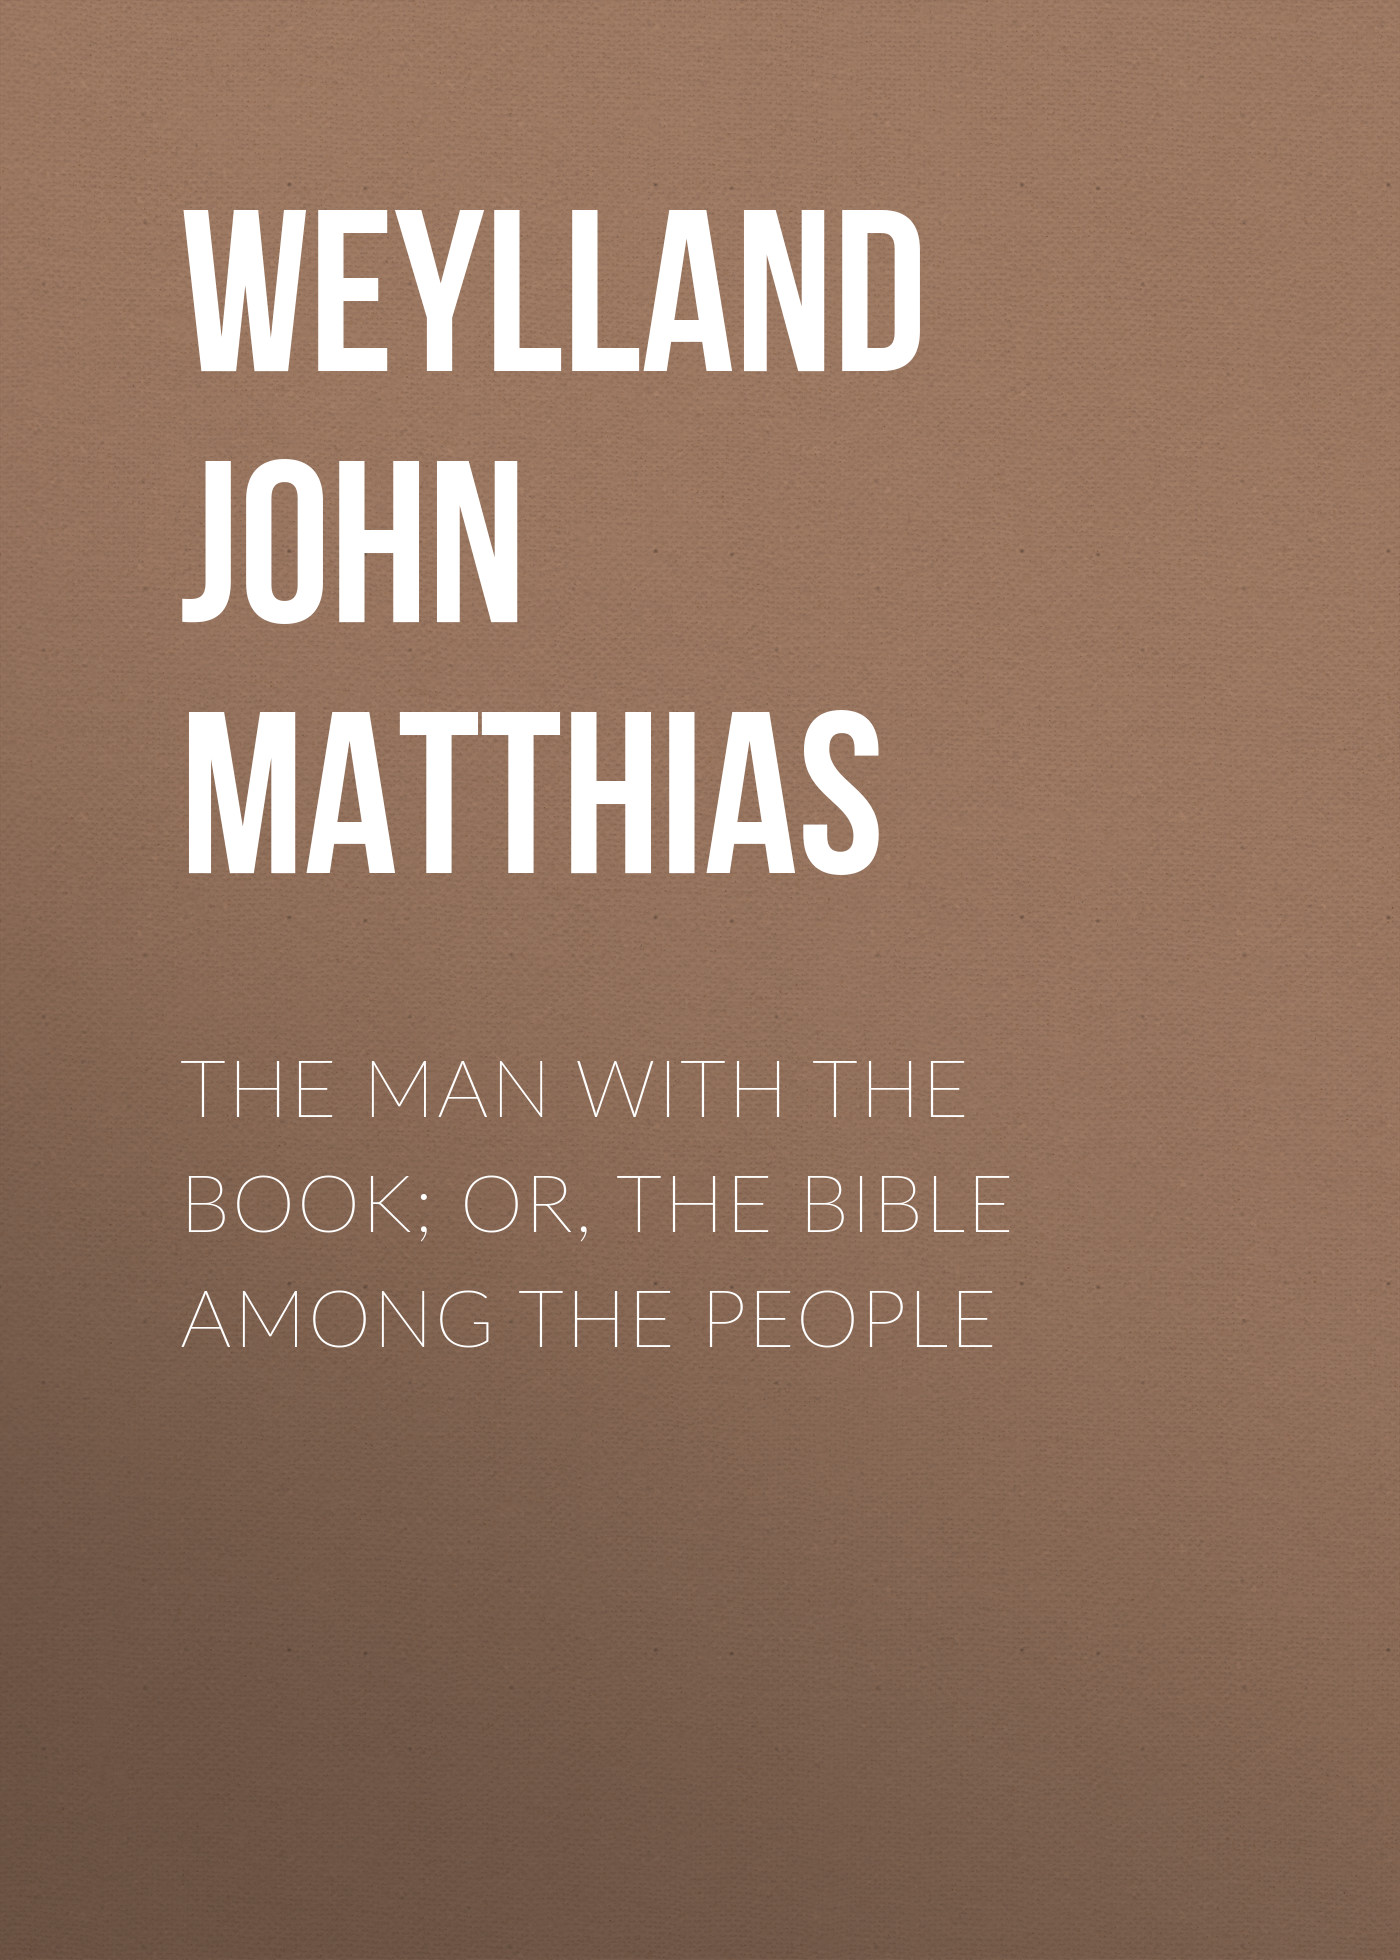 Weylland John Matthias The Man with the Book; or, The Bible Among the People matthias schweighöfer erfurt